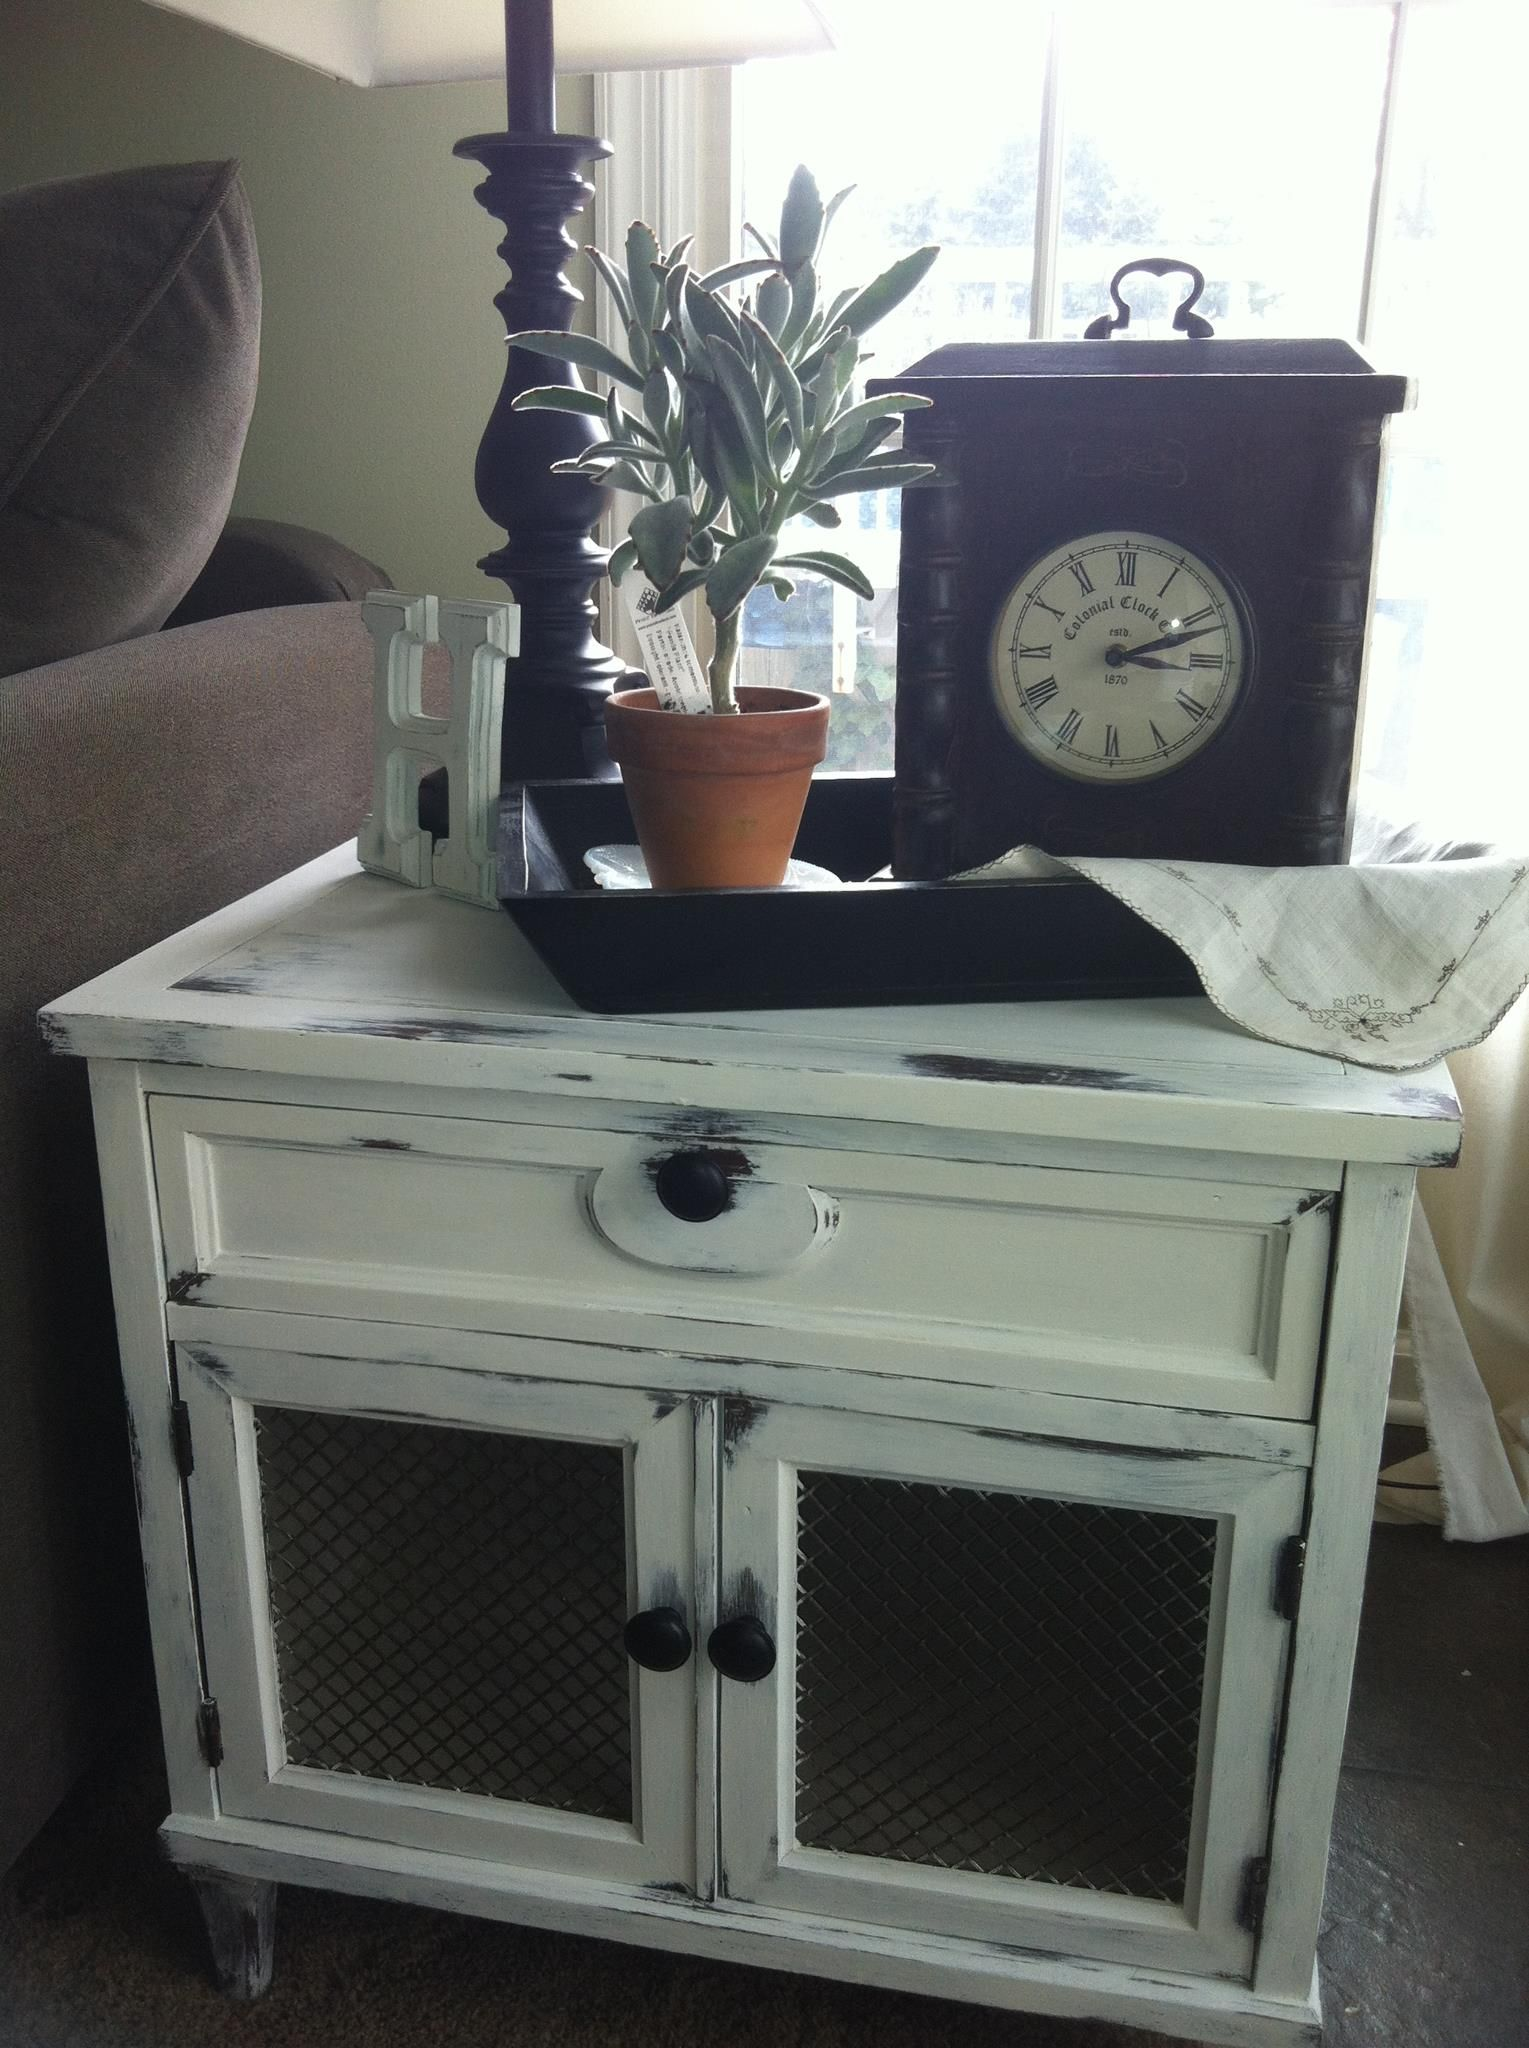 Took an old lamp table and added Annies Sloan chalk paint in Pure